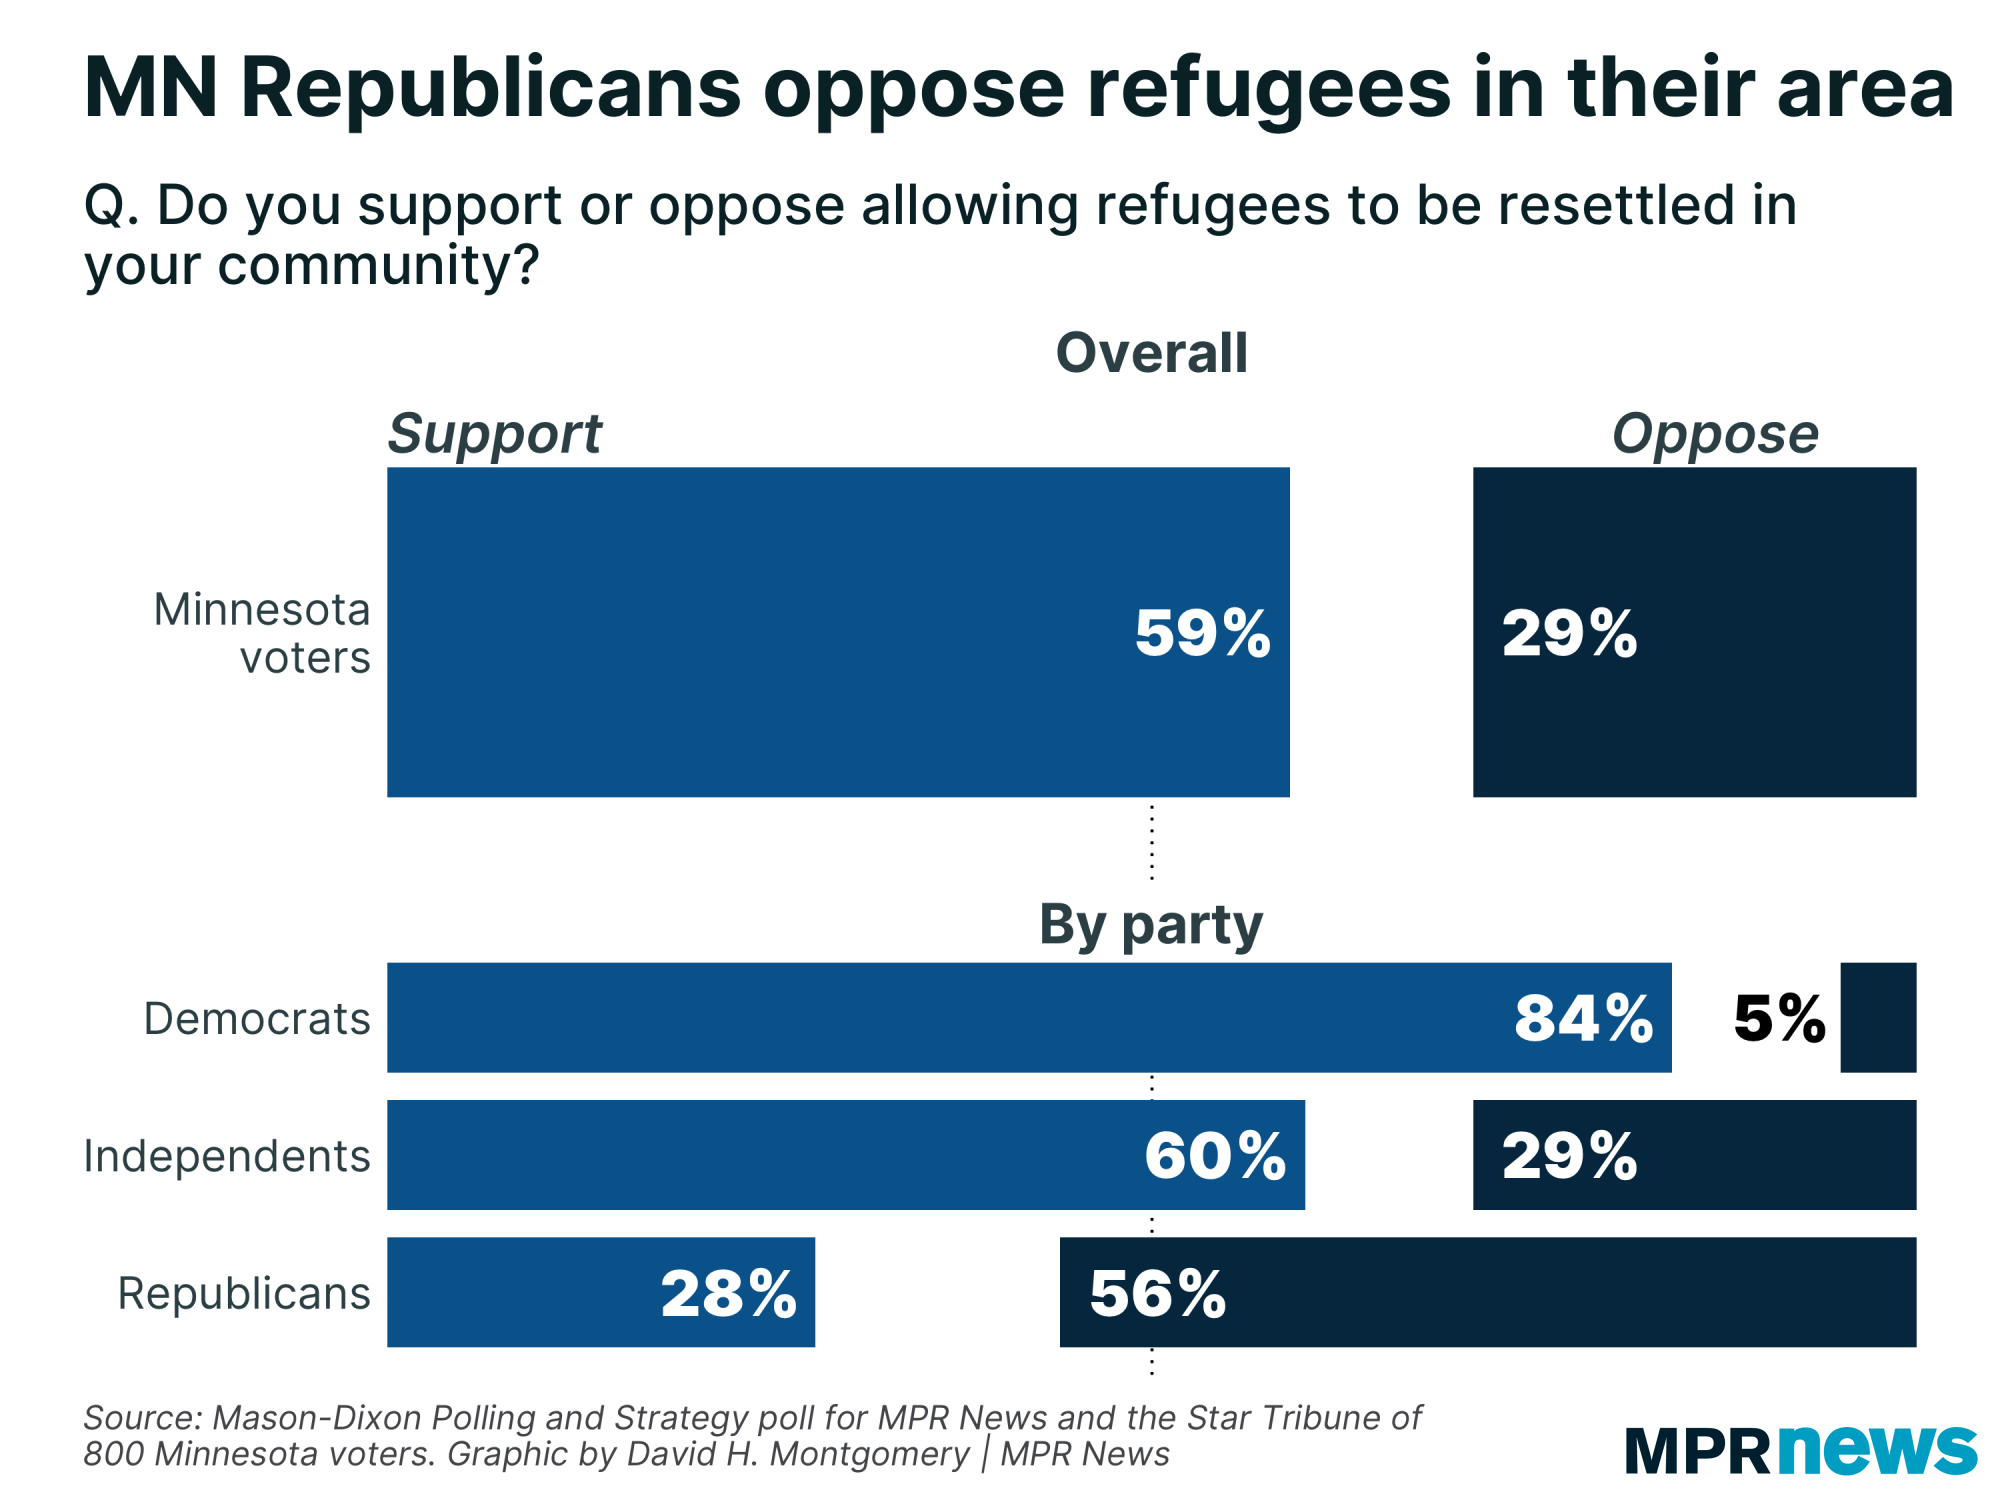 Minnesota Republicans oppose refugees in their area.